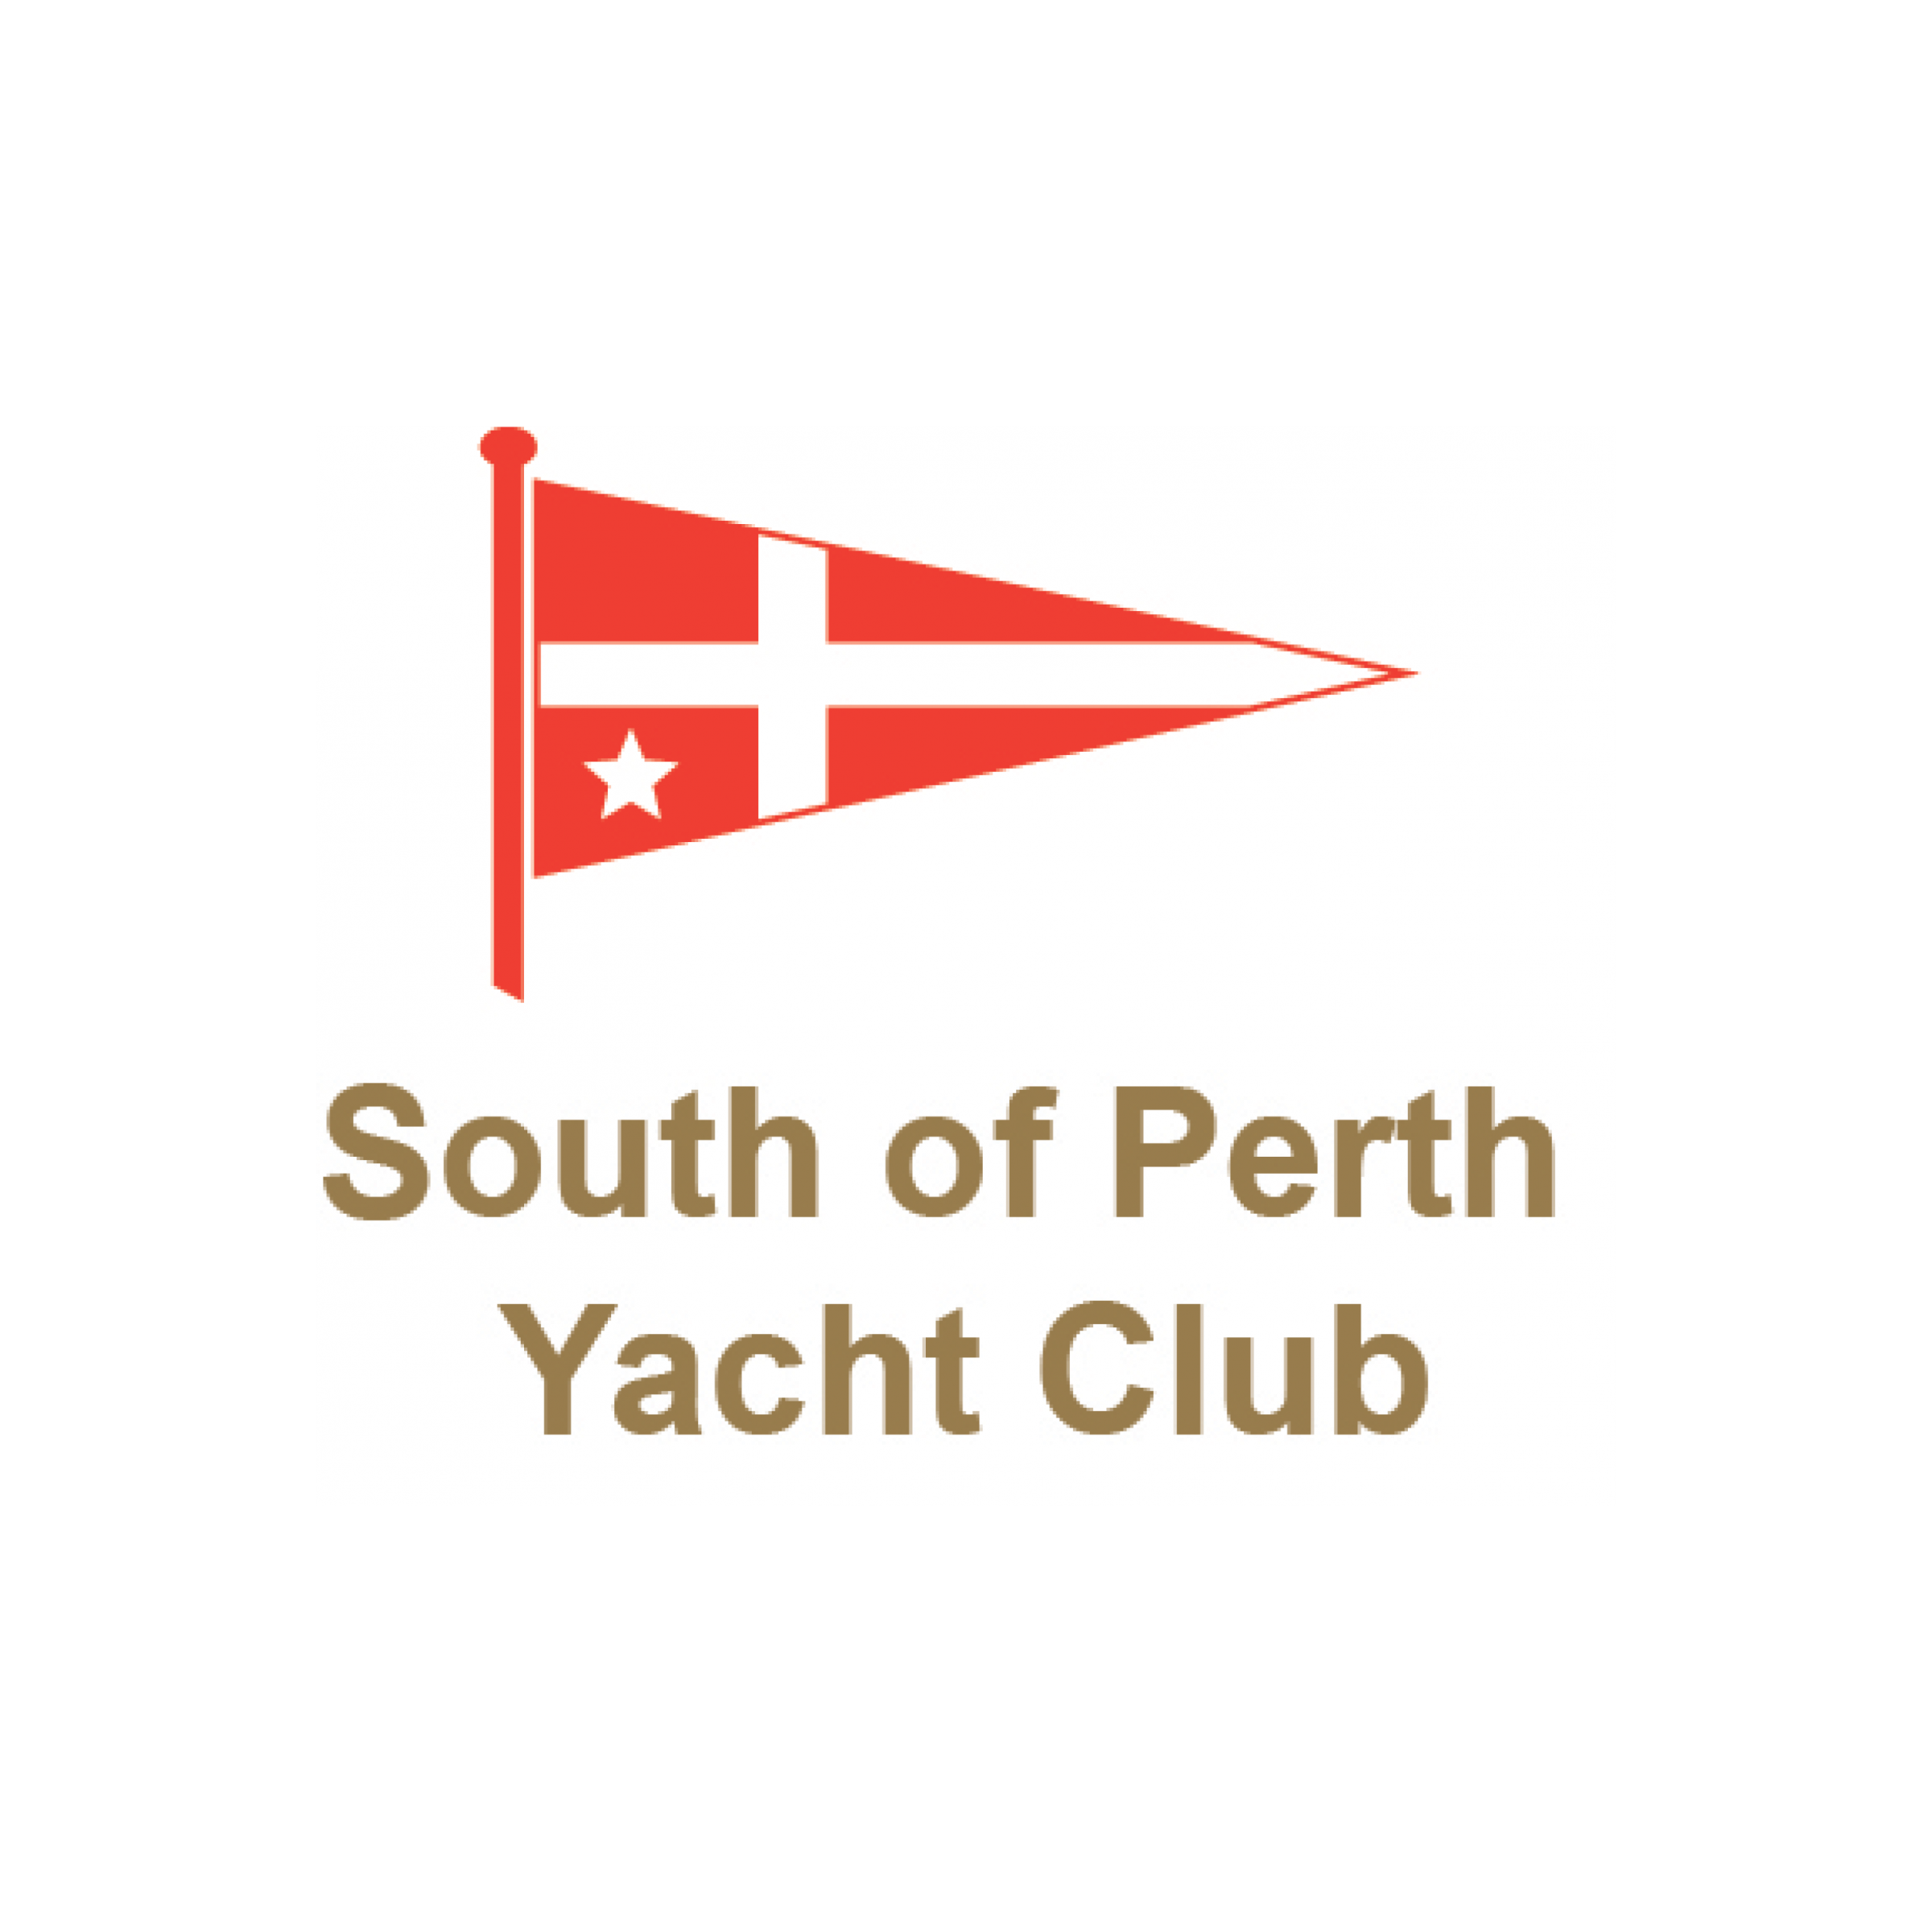 south of perth yacht club logo